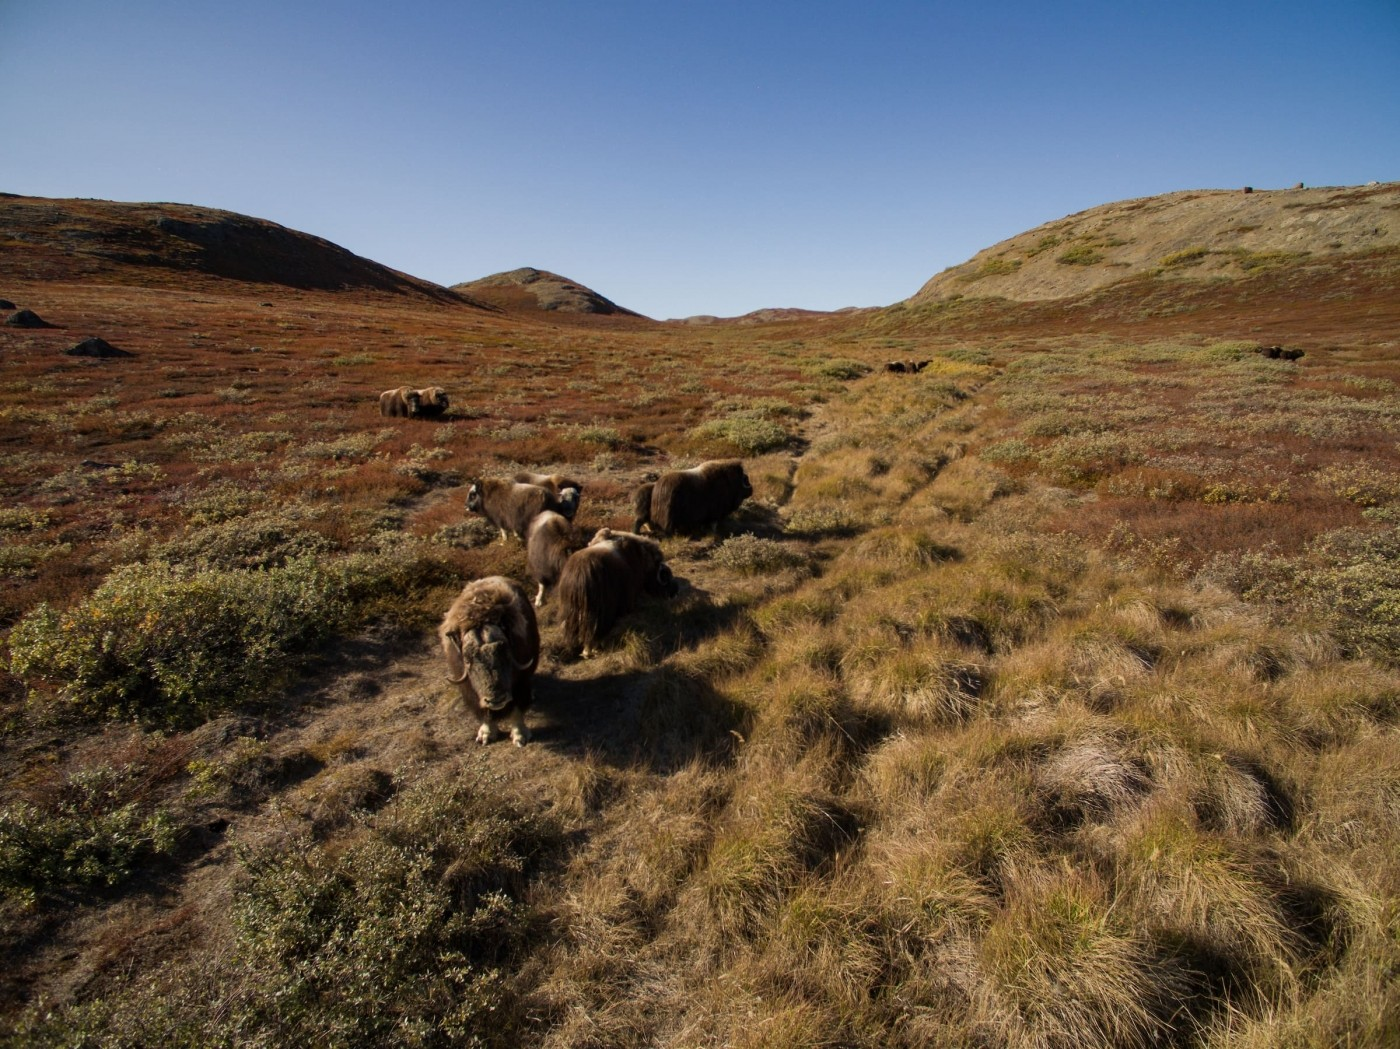 Muskoxen in the backcountry. Photo by Aningaaq R Carlsen